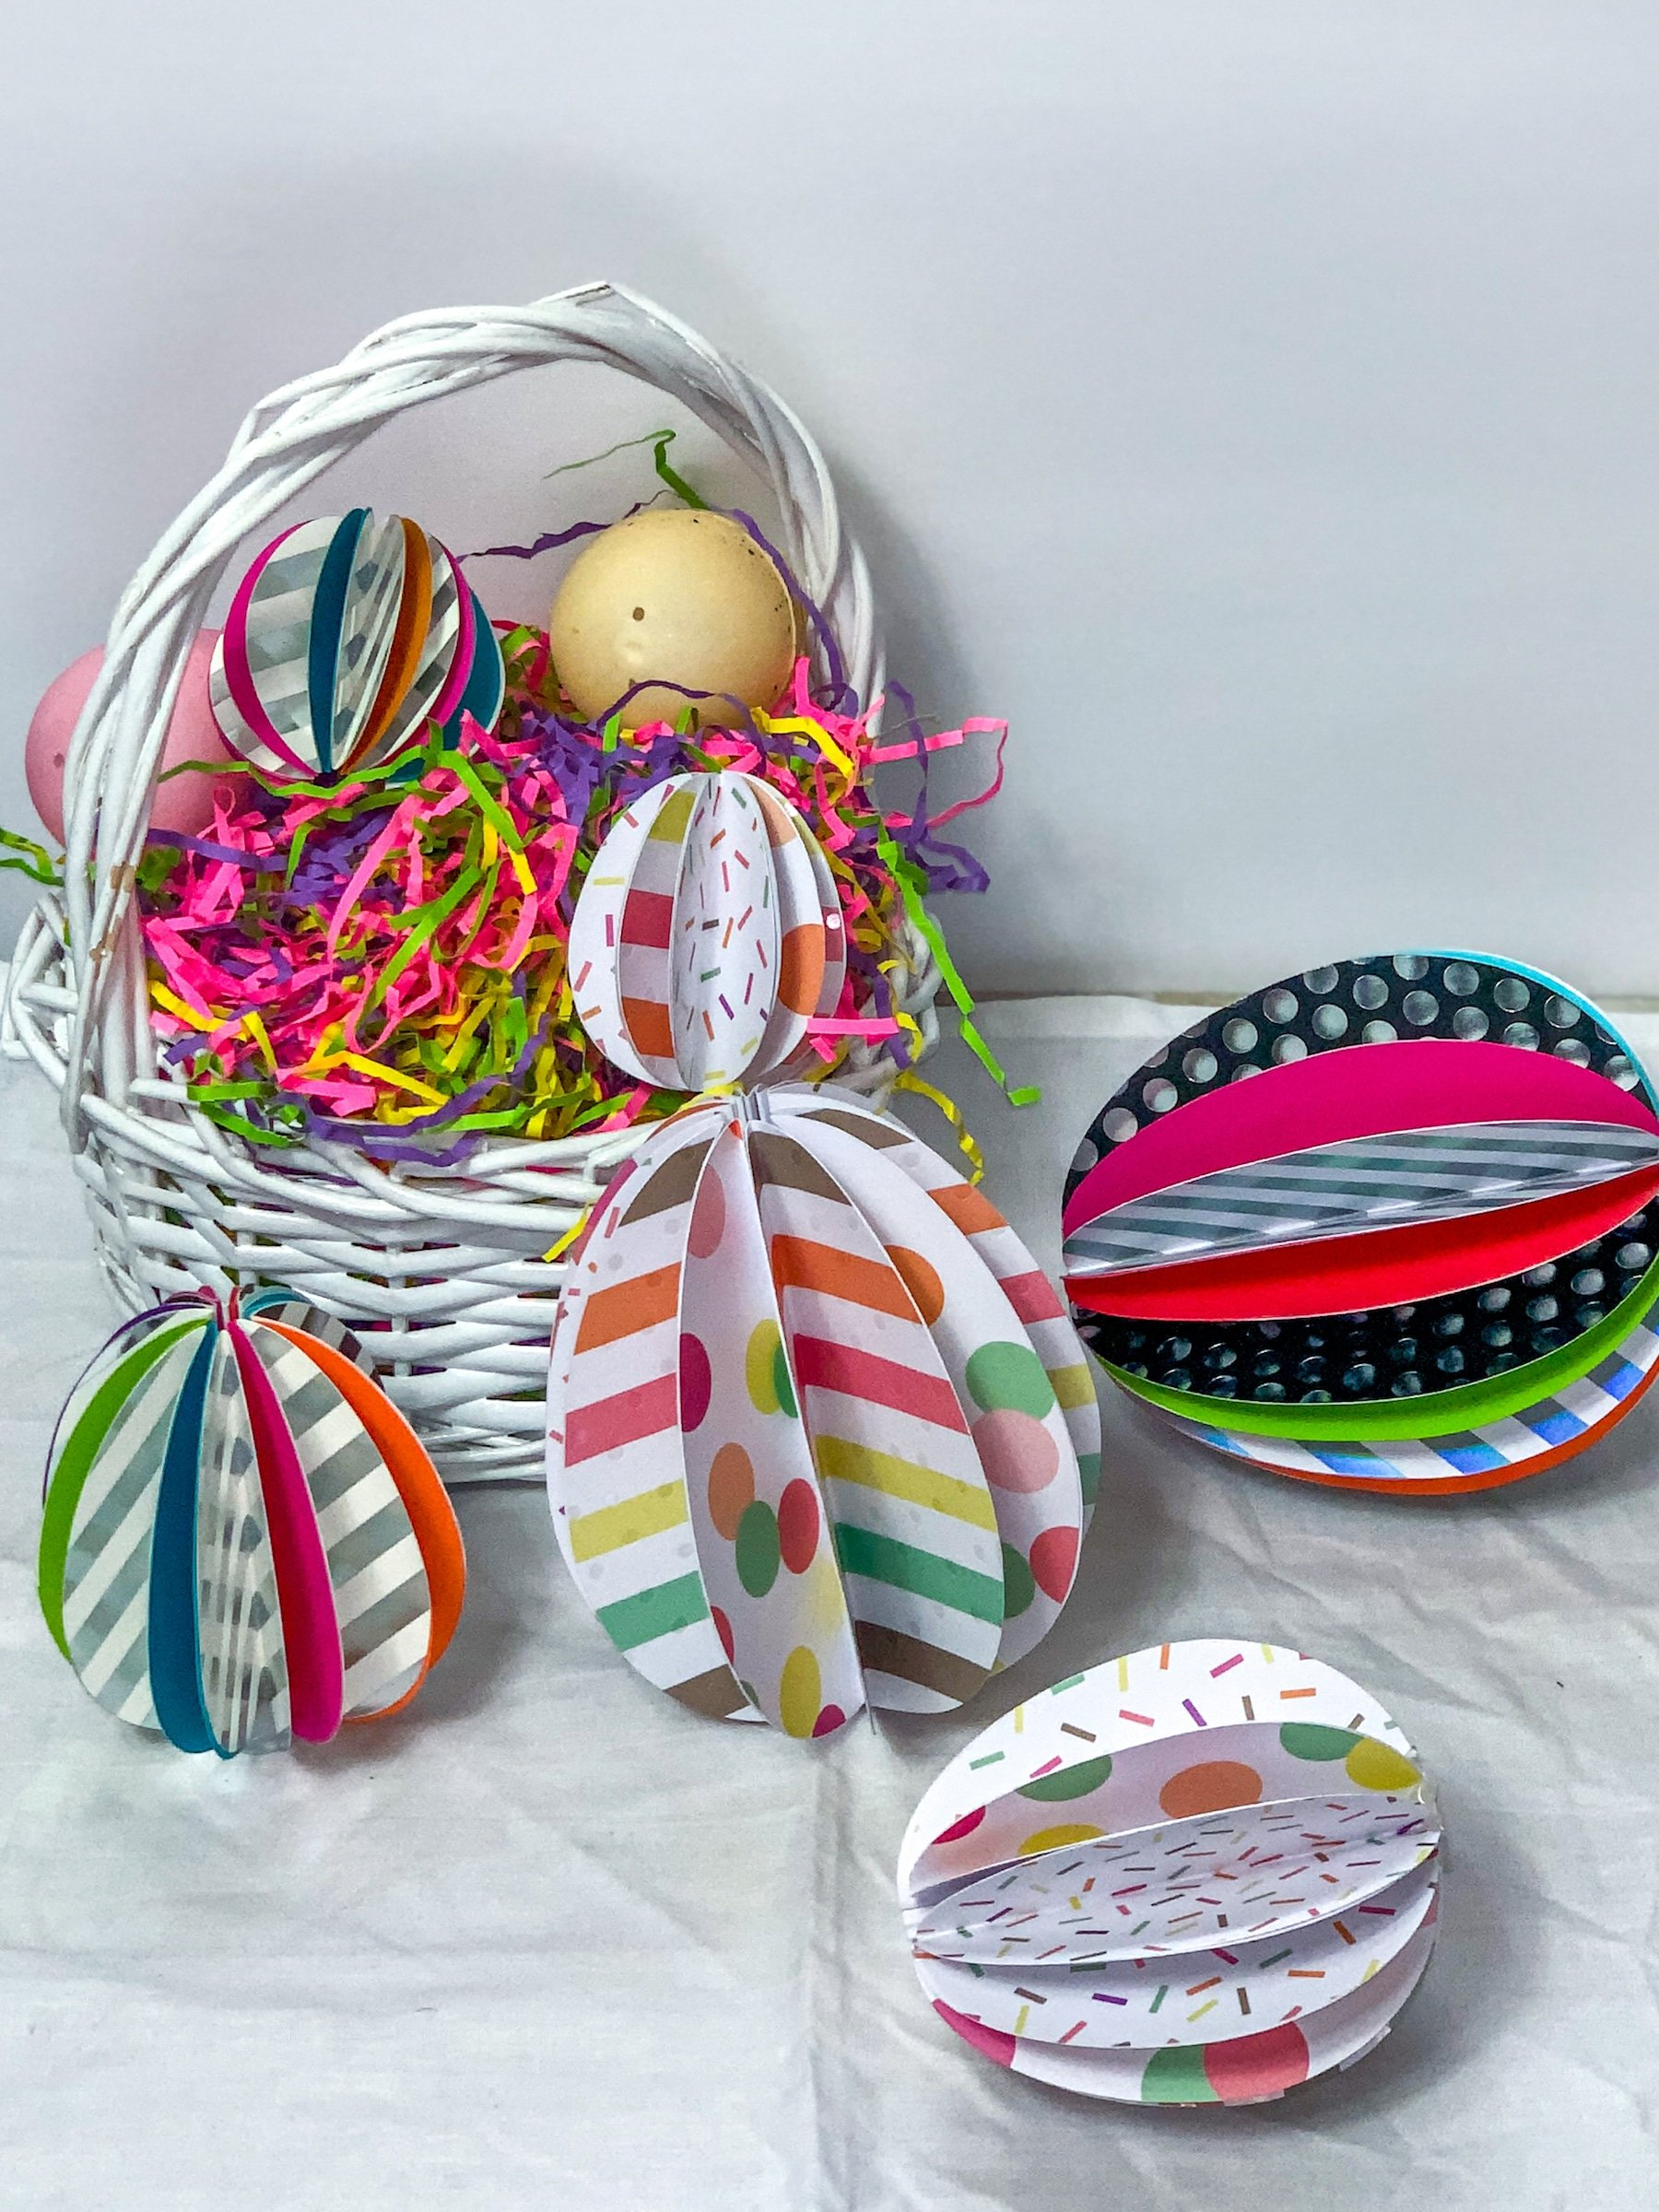 eggs made from paper